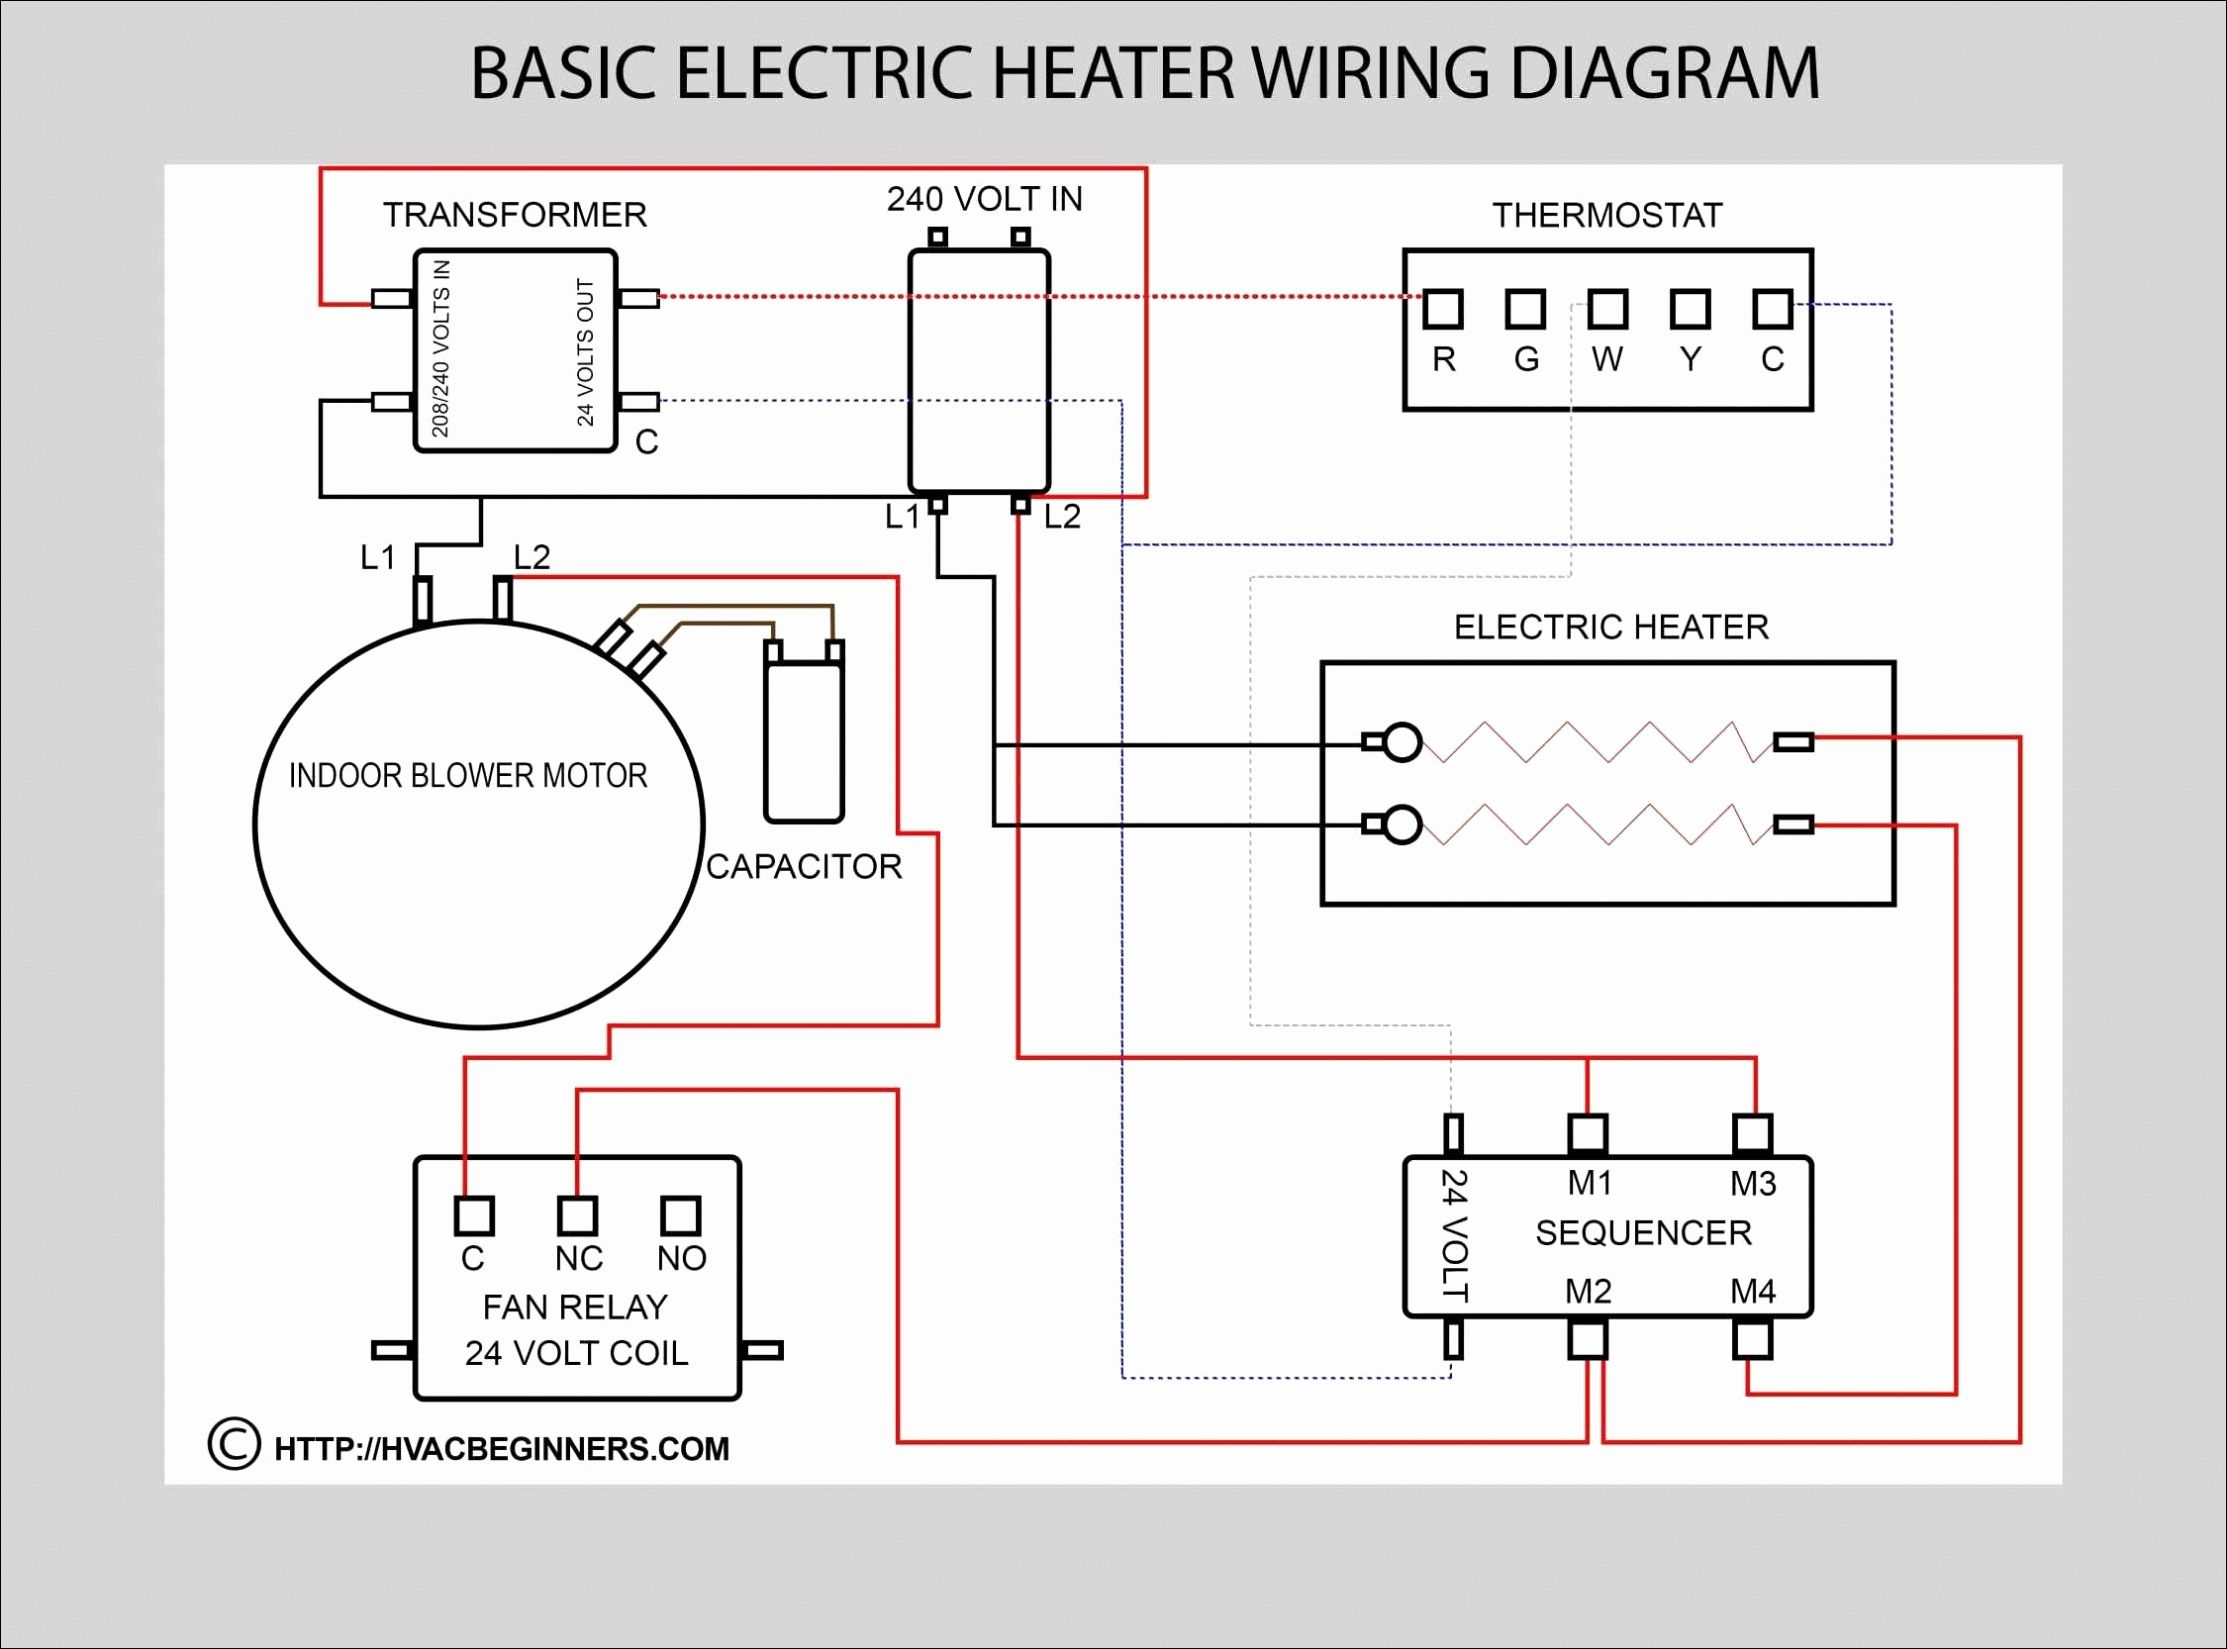 Universal Power Window Wiring Schematic | Wiring Diagram - 5 Pin Power Window Switch Wiring Diagram